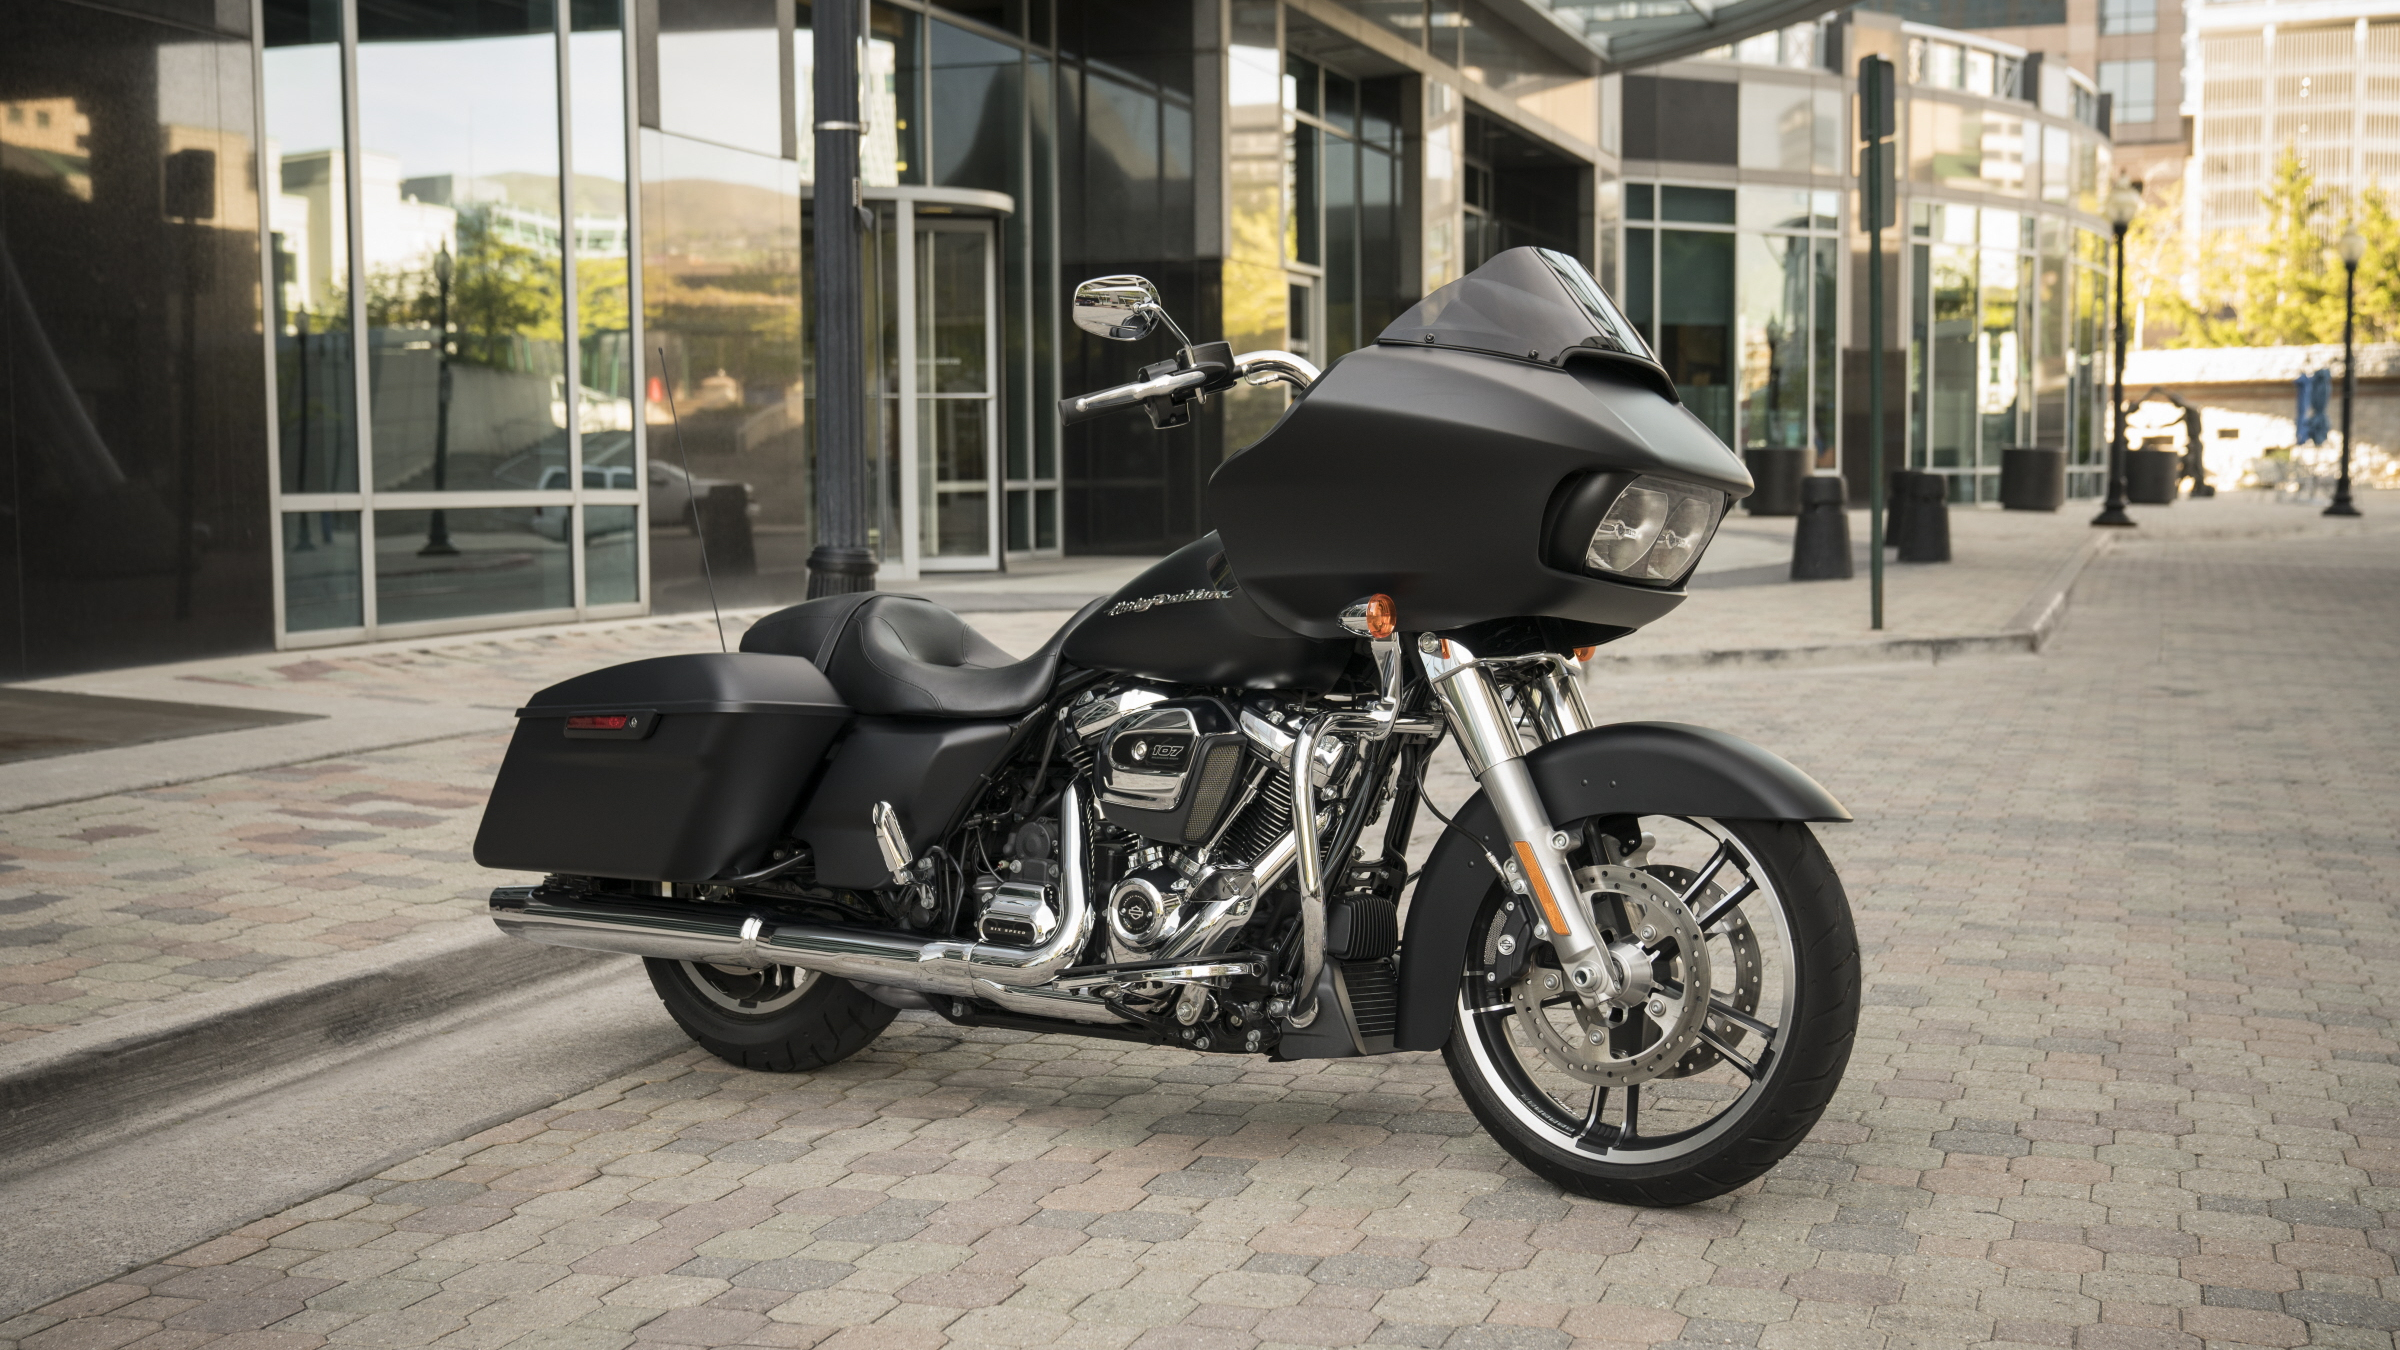 2018 harley davidson road glide road glide special top speed. Black Bedroom Furniture Sets. Home Design Ideas